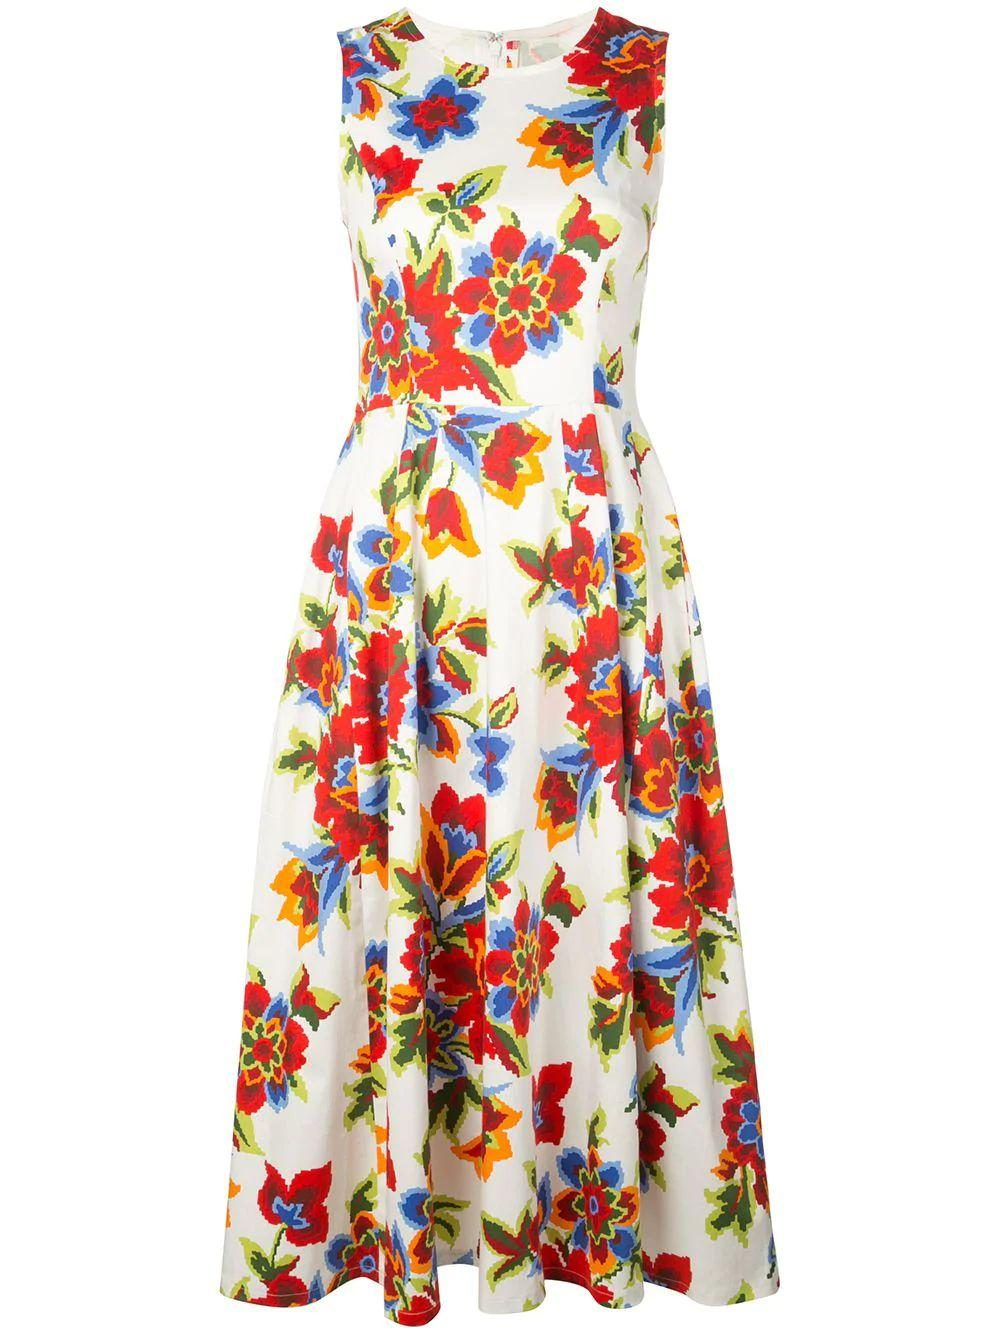 Sleeve Less Pixel Floral Print A Line Dress